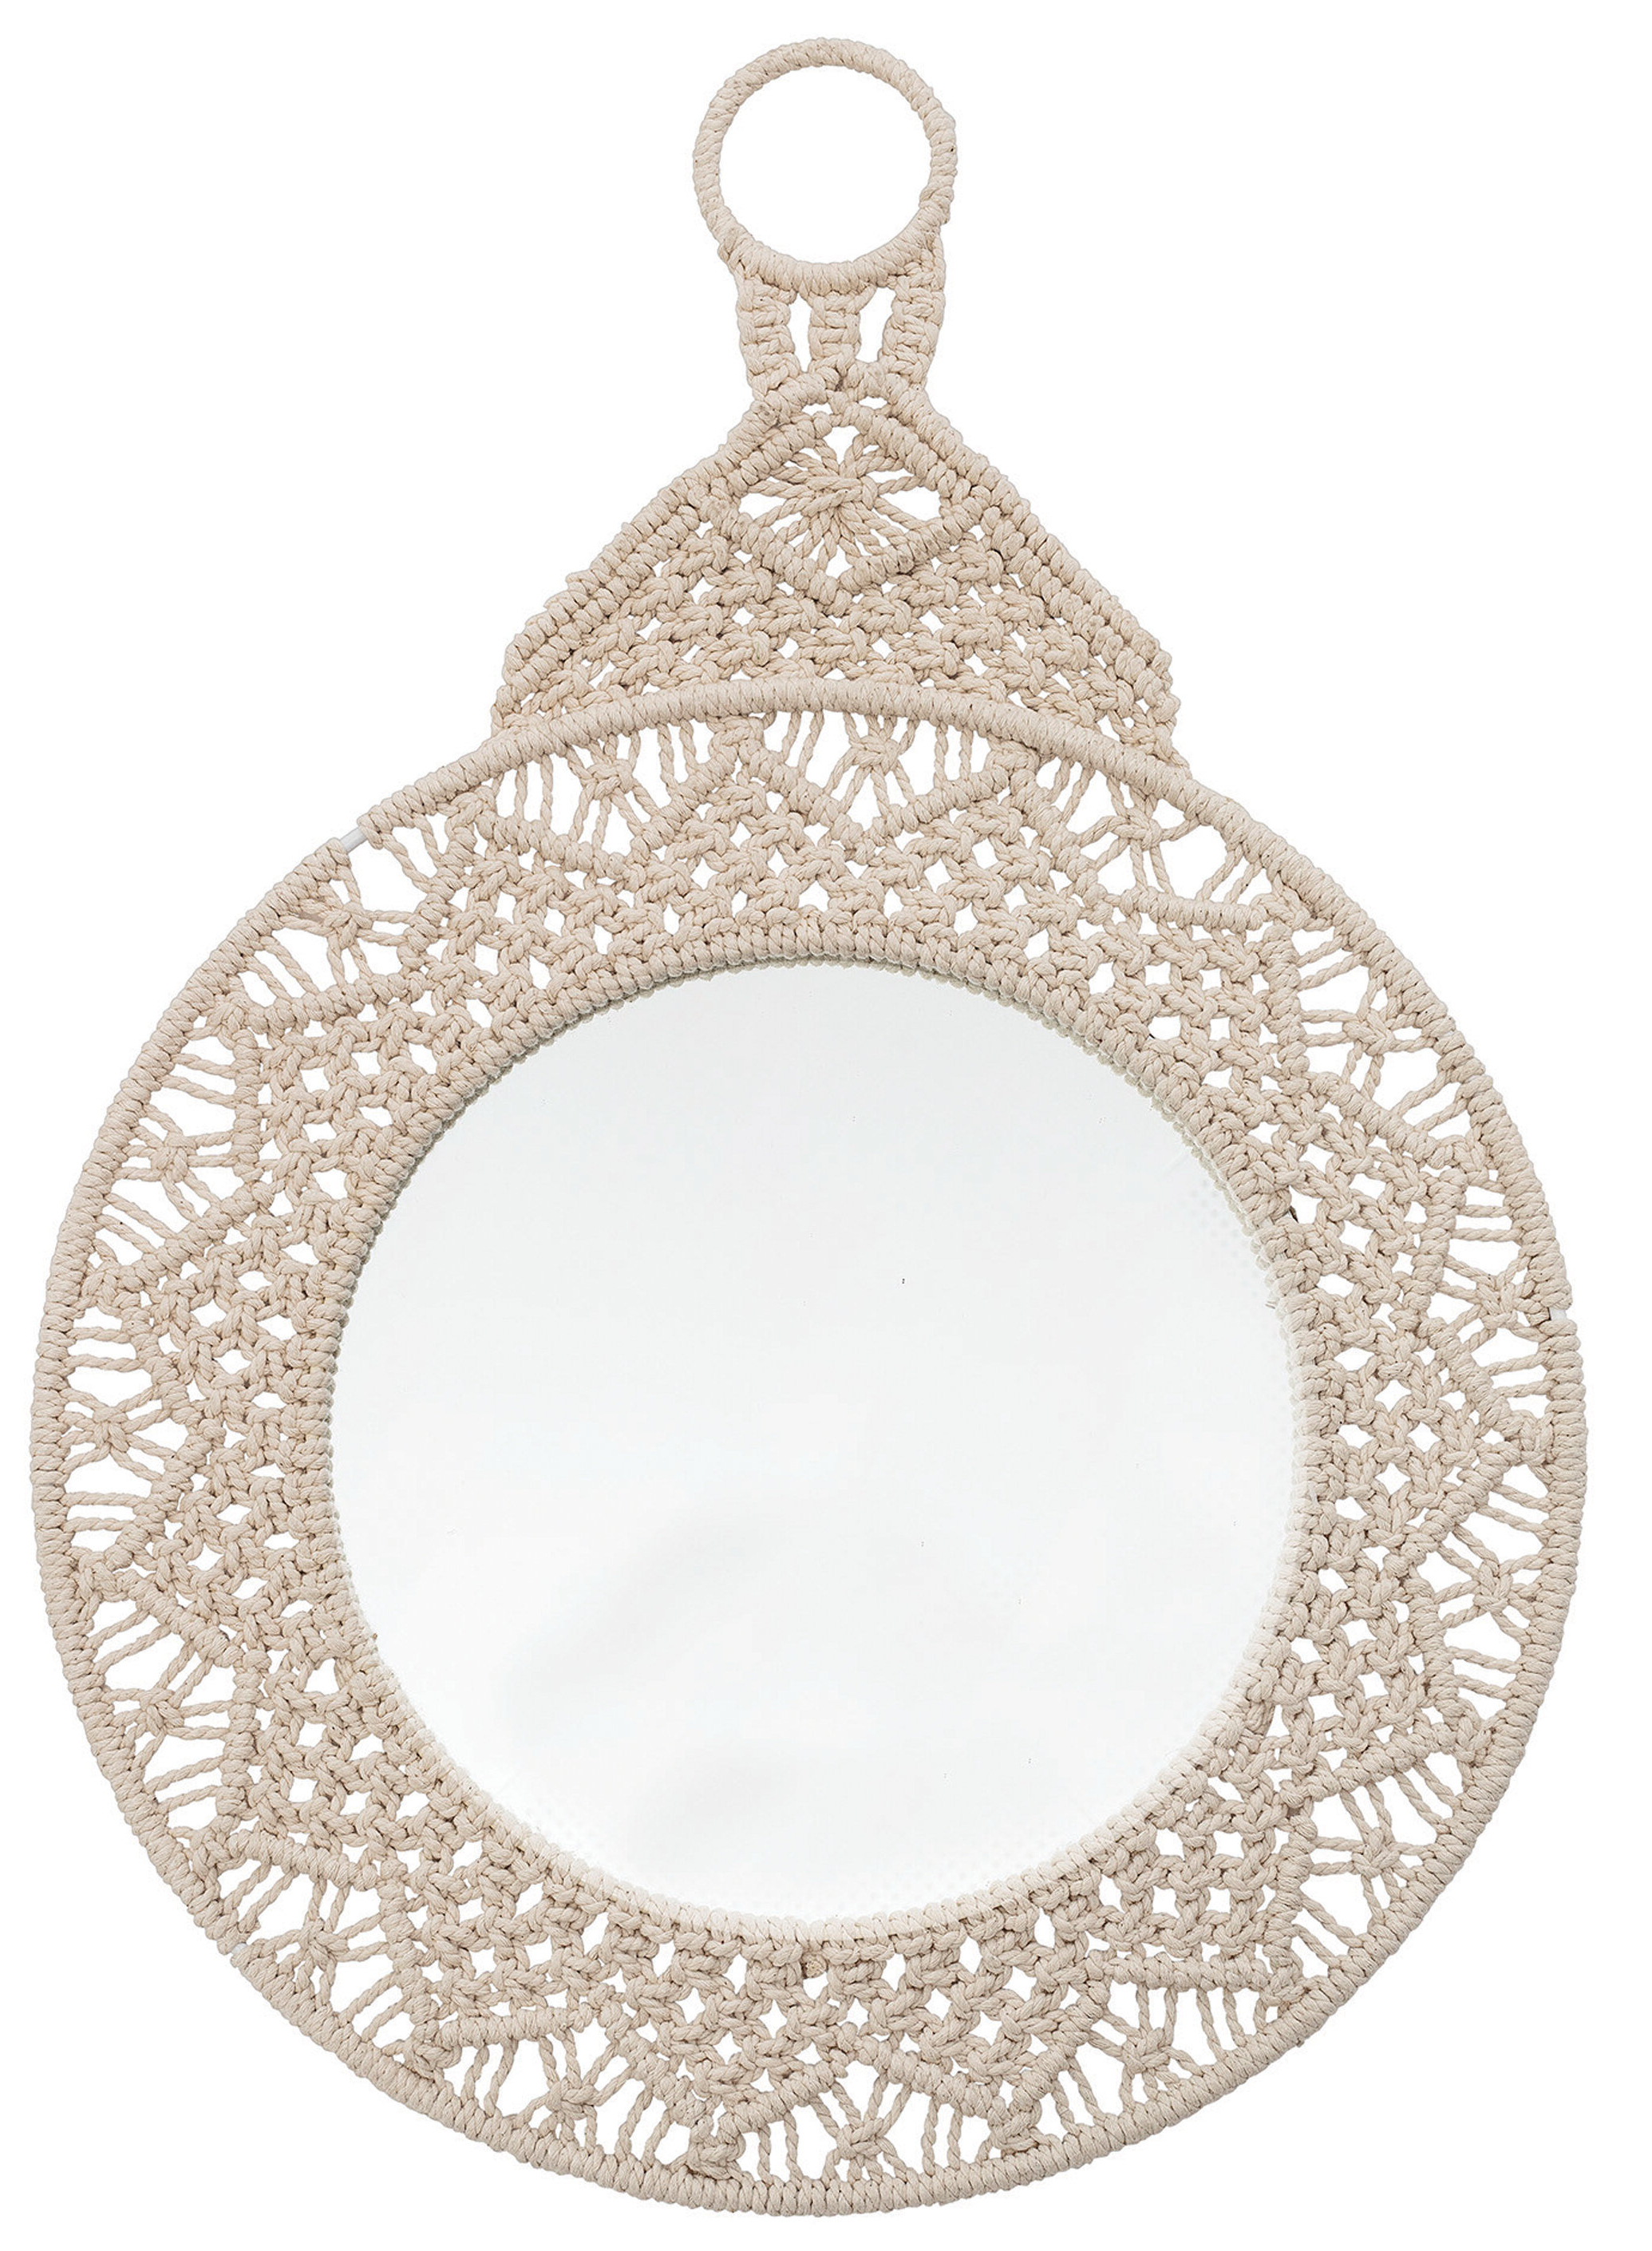 Round Eclectic Accent Mirrors With Regard To Fashionable Crewellwalk Eclectic Accent Mirror (Gallery 9 of 20)